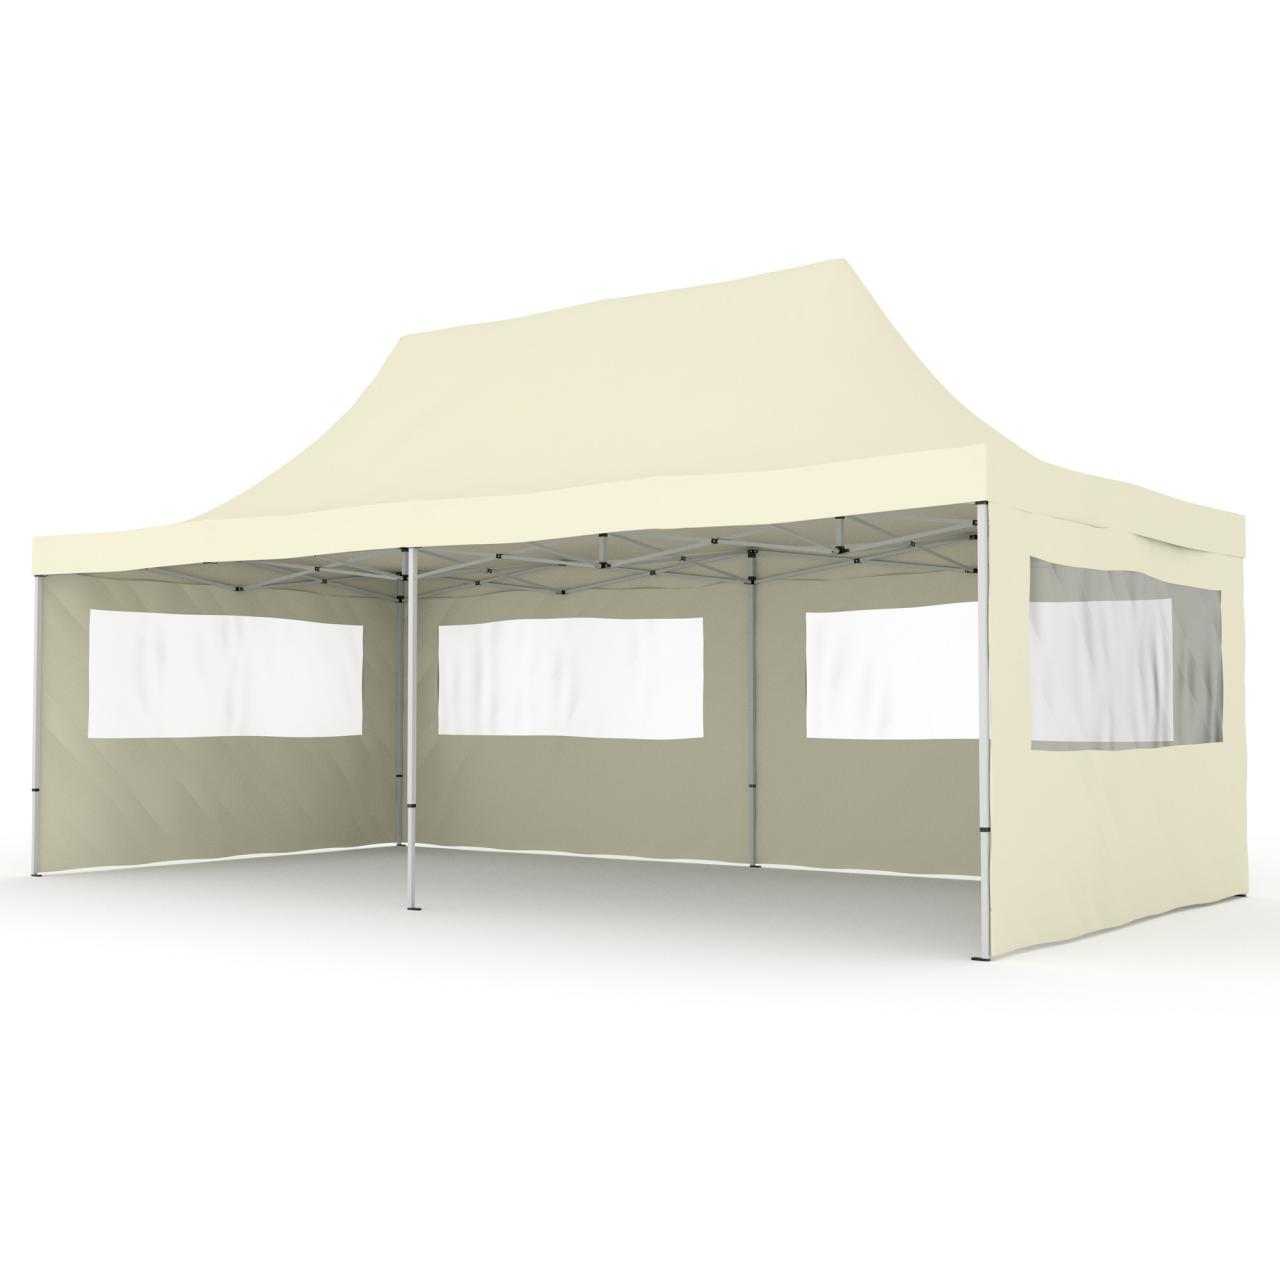 3x6 gartenpavillon alu faltzelt faltpavillon klappzelt gartenzelt partyzelt zelt ebay. Black Bedroom Furniture Sets. Home Design Ideas